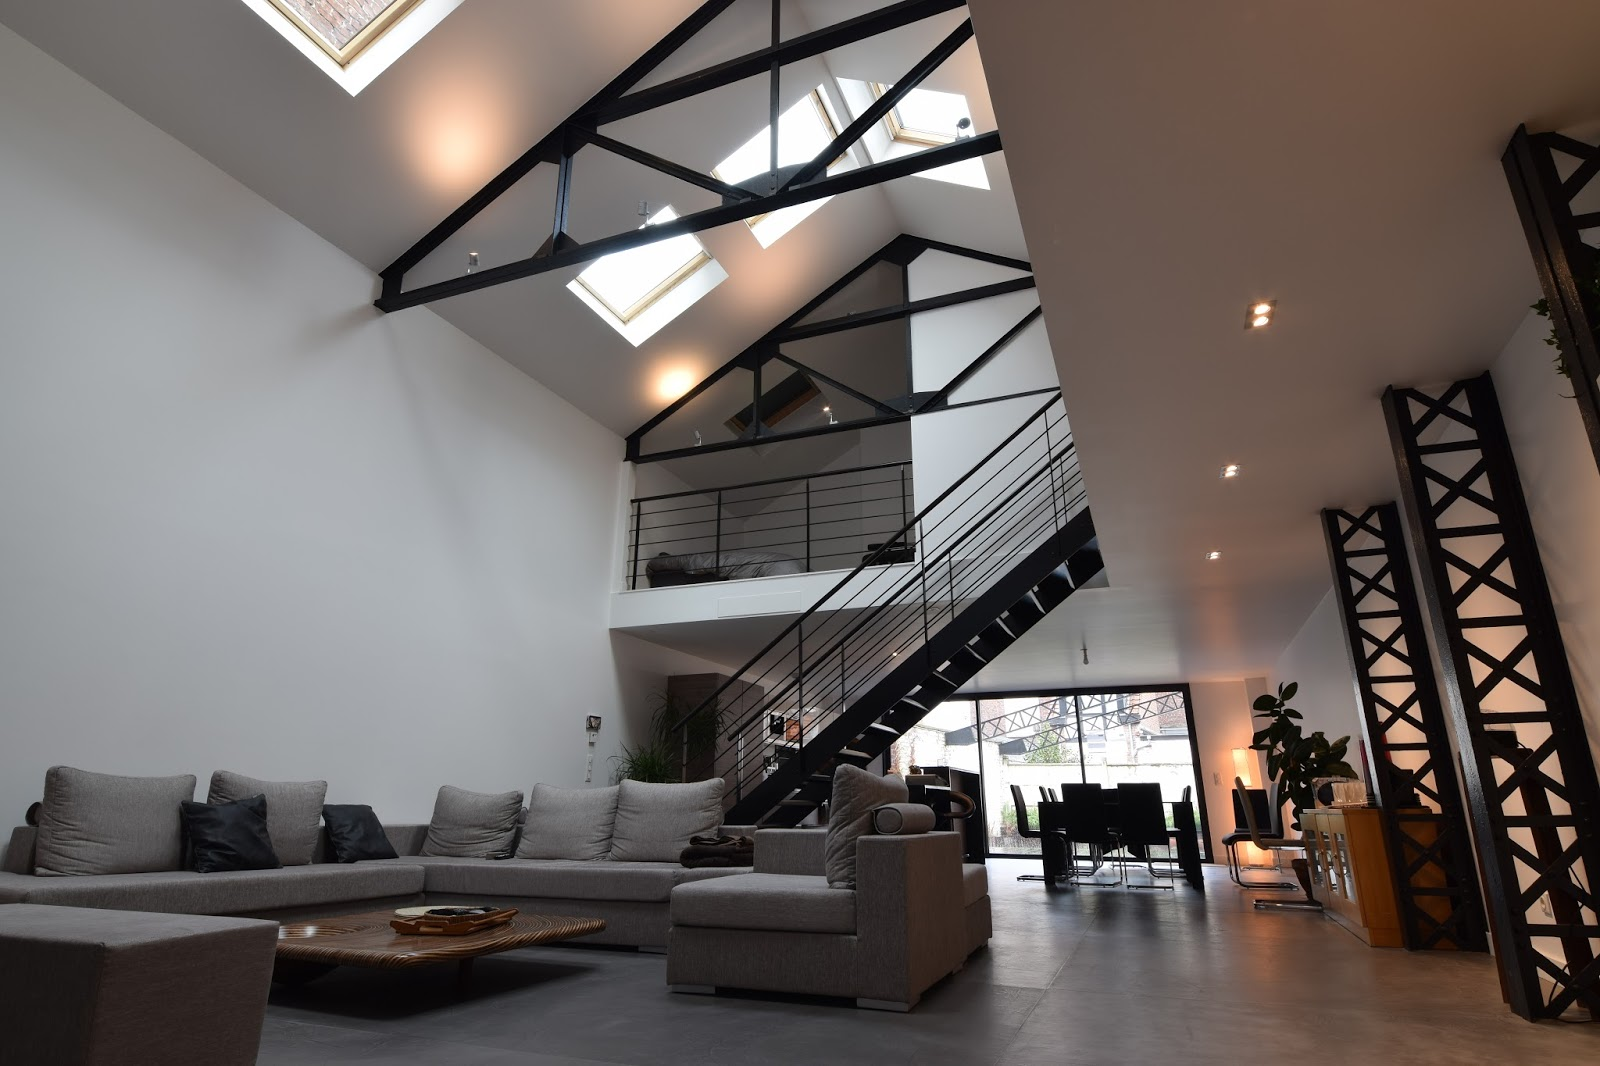 Jacques lenain architecte lille transformation d 39 un garage en loft a la - Construction d un loft ...